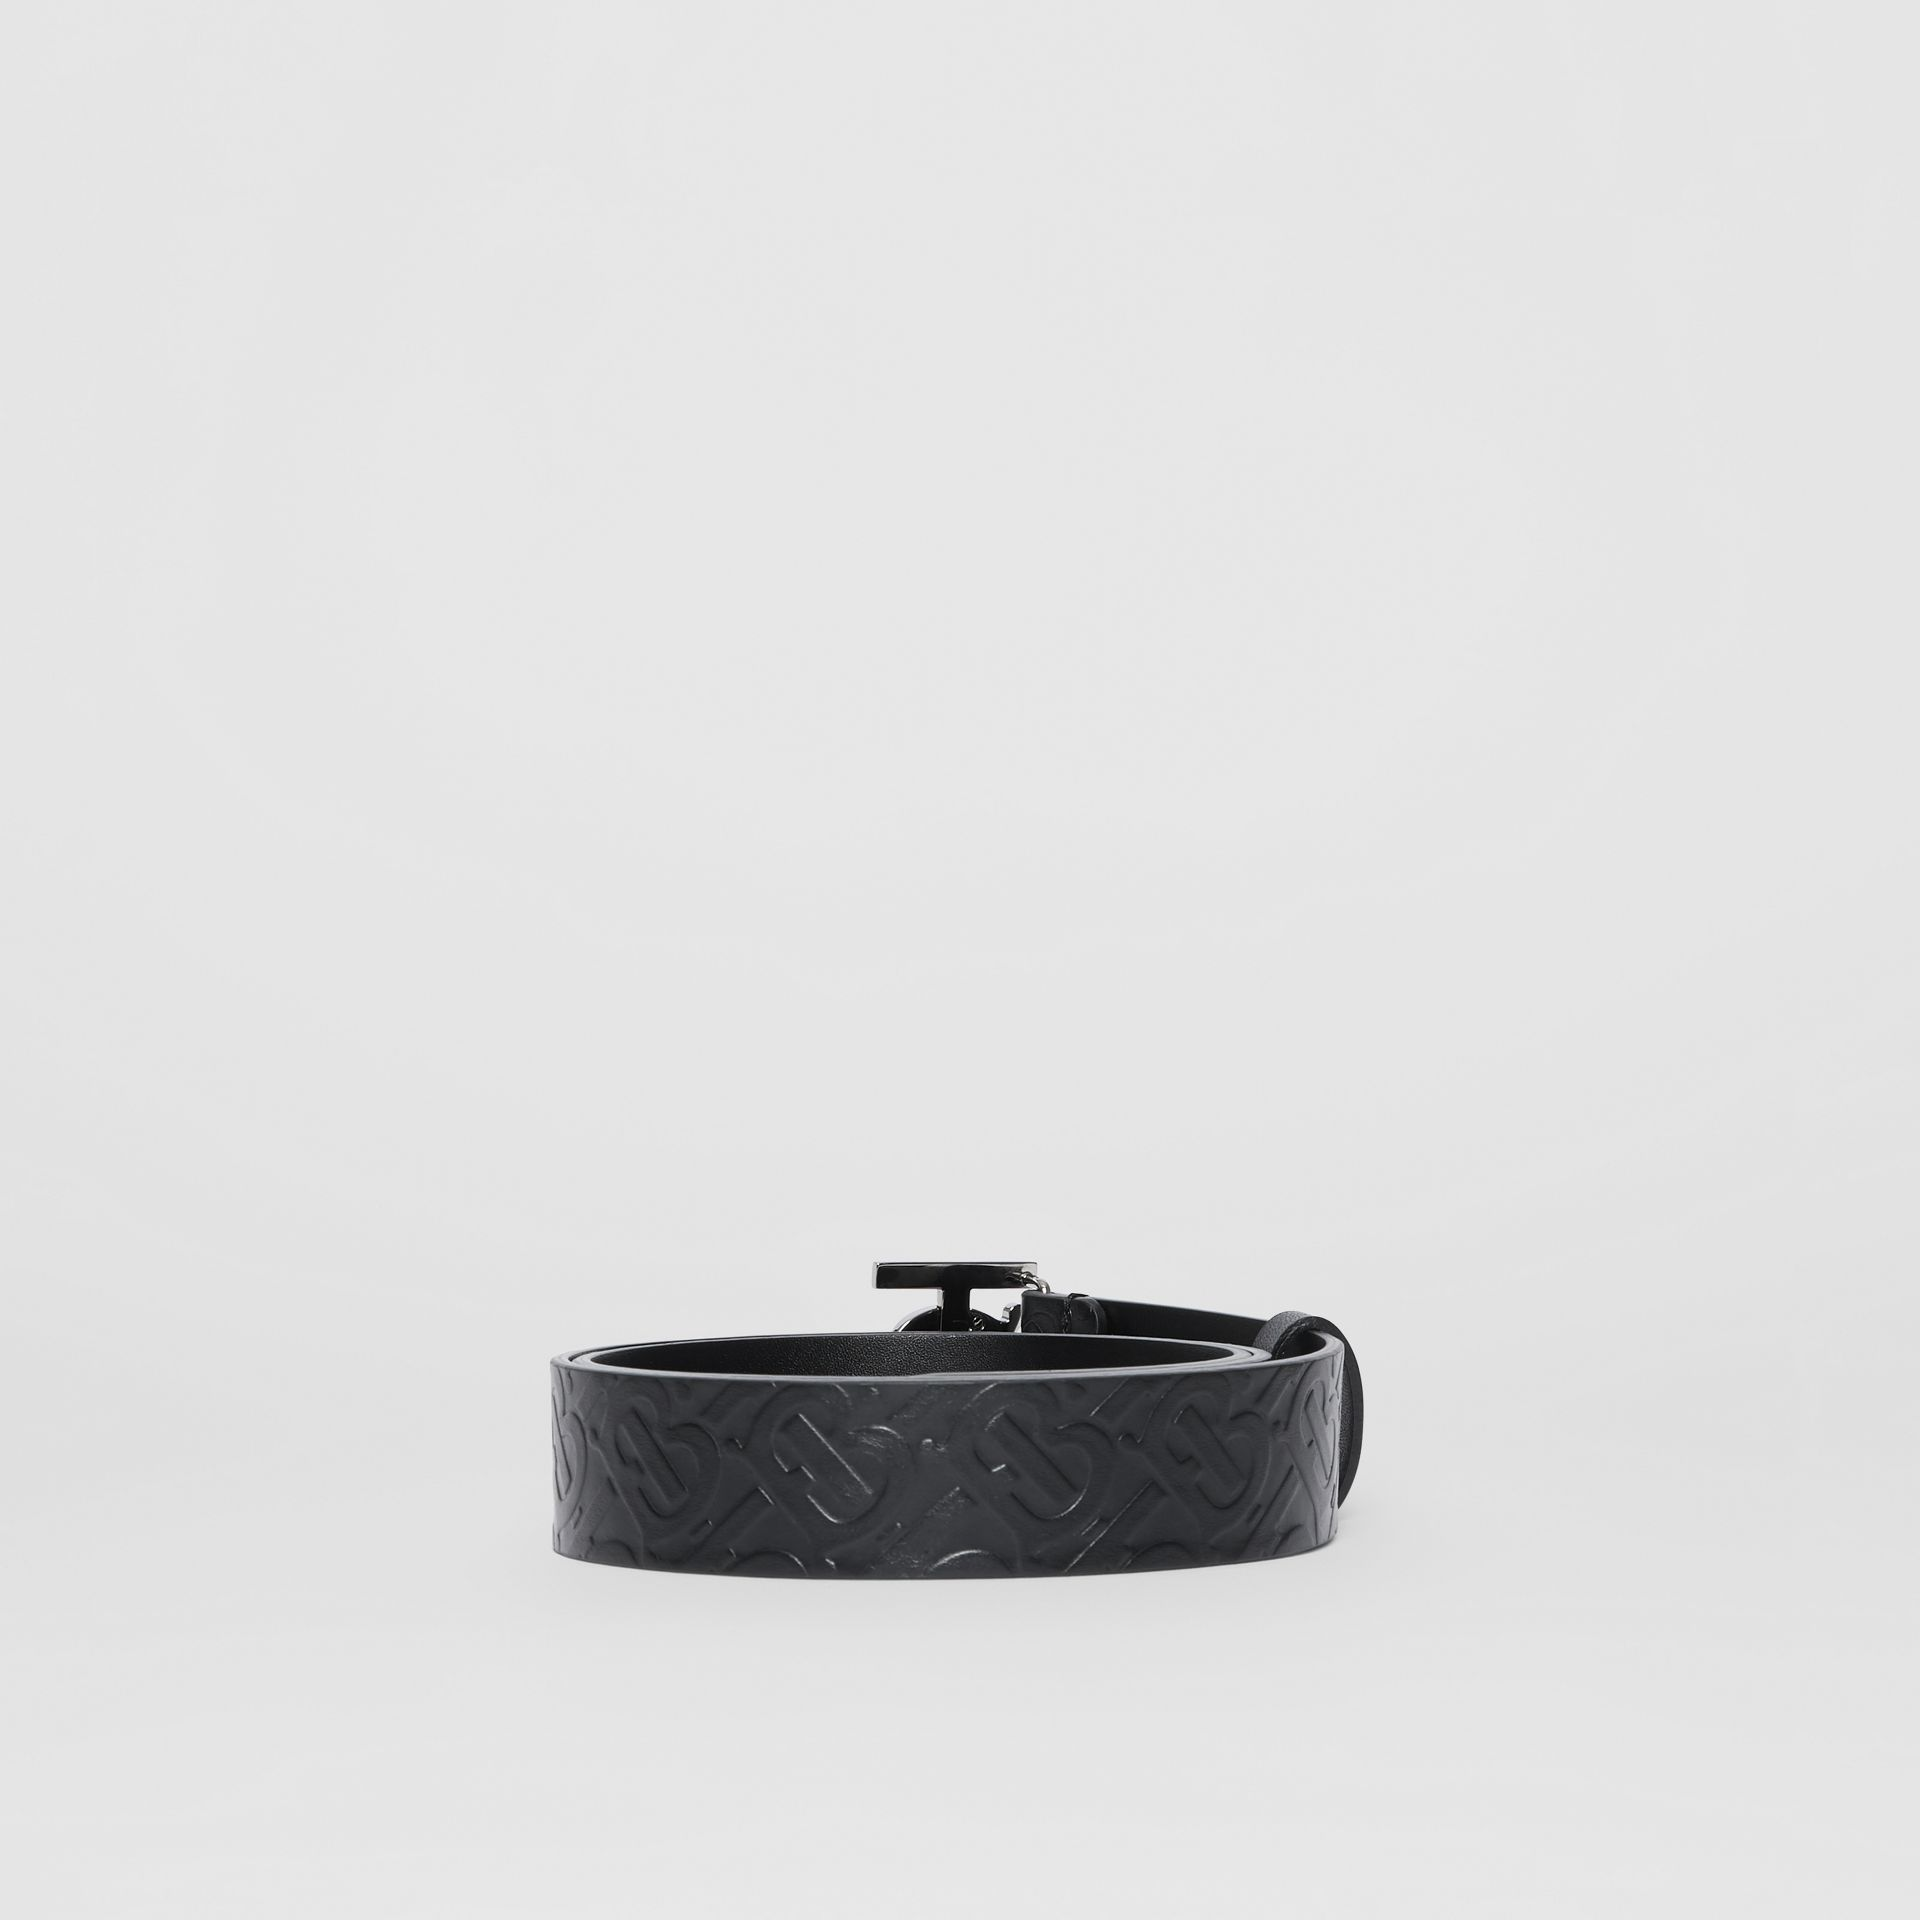 Monogram Motif Monogram Leather Belt in Black - Men | Burberry - gallery image 4